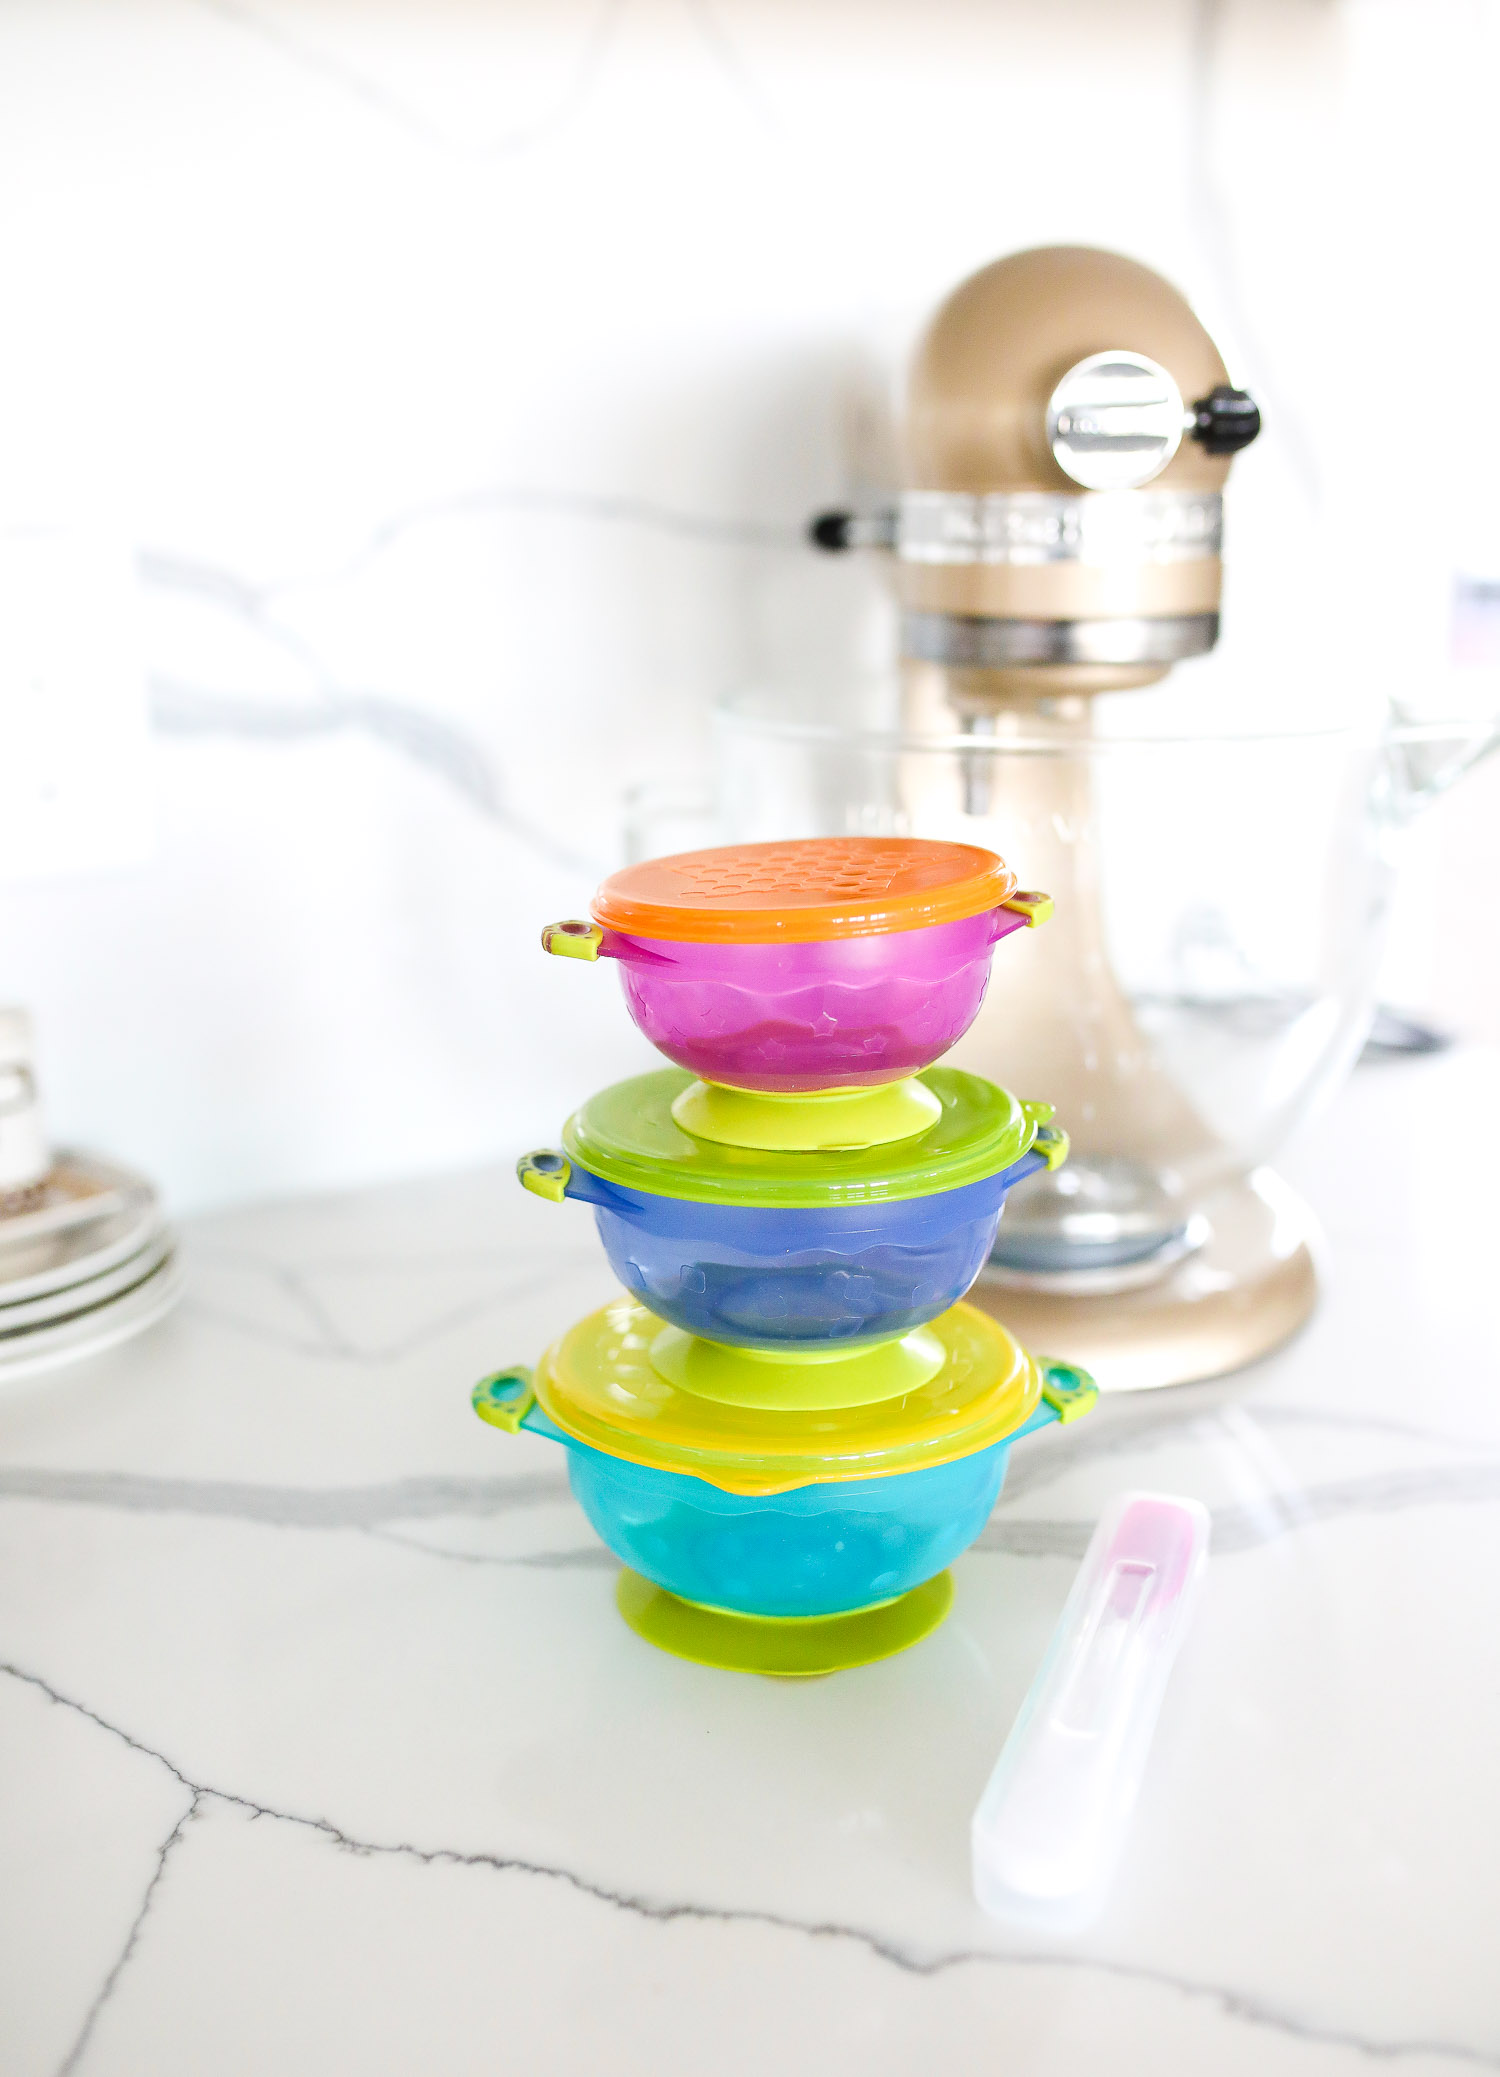 kids travel dishes bowls, top amazon must haves, amazon best buys 2020, emily gemma, amazon prime must haves blog post,_-4   Amazon Prime Favorites by popular US life and style blog, The Sweetest Thing: image of Amazon Prime kids stackable travel bowls with suction.